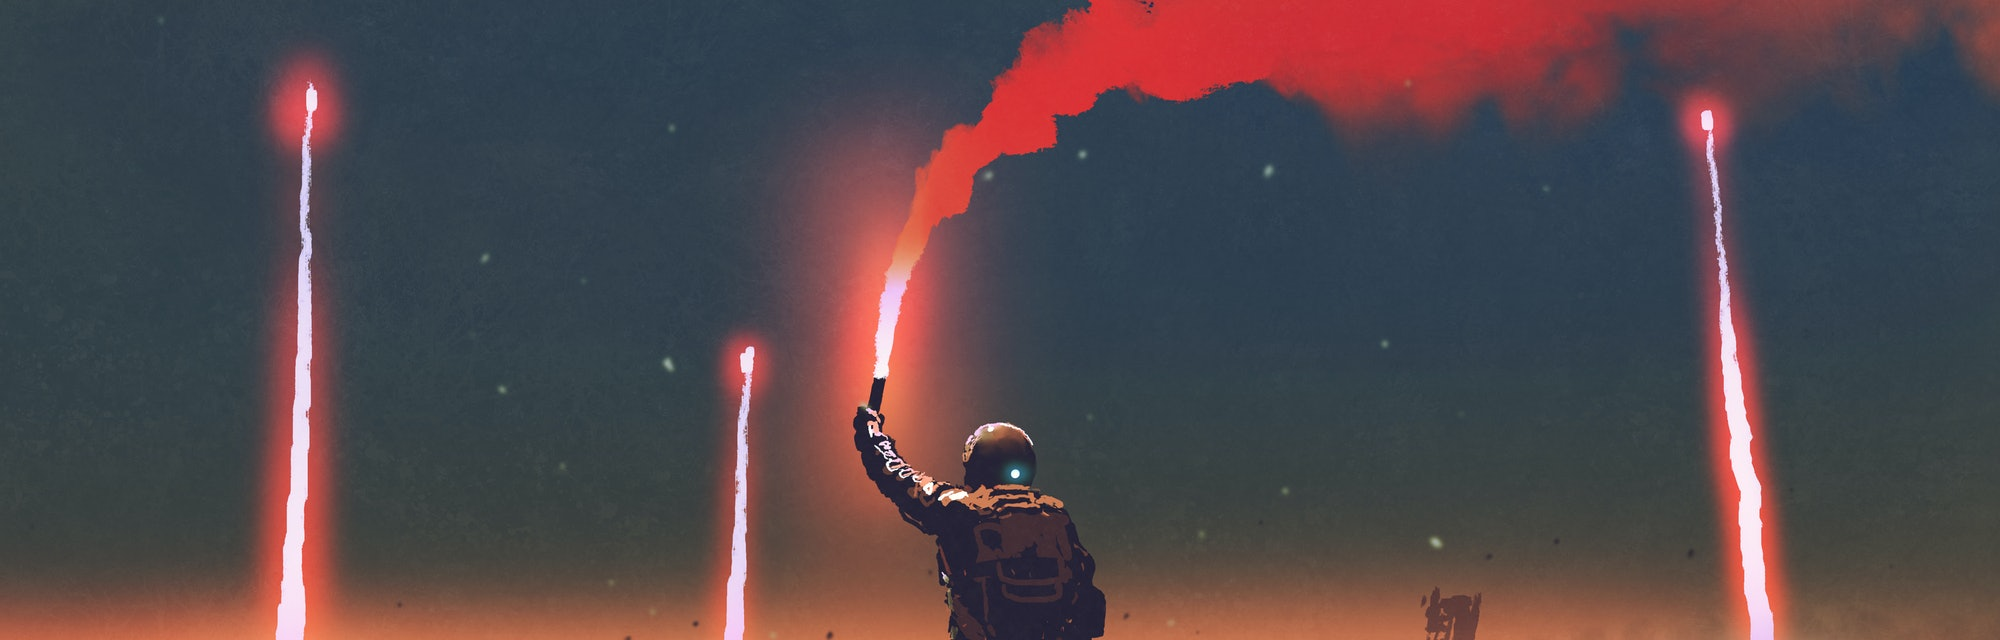 man holds a red smoke flare up in the air and standing against the apocalypse world, digital art sty...